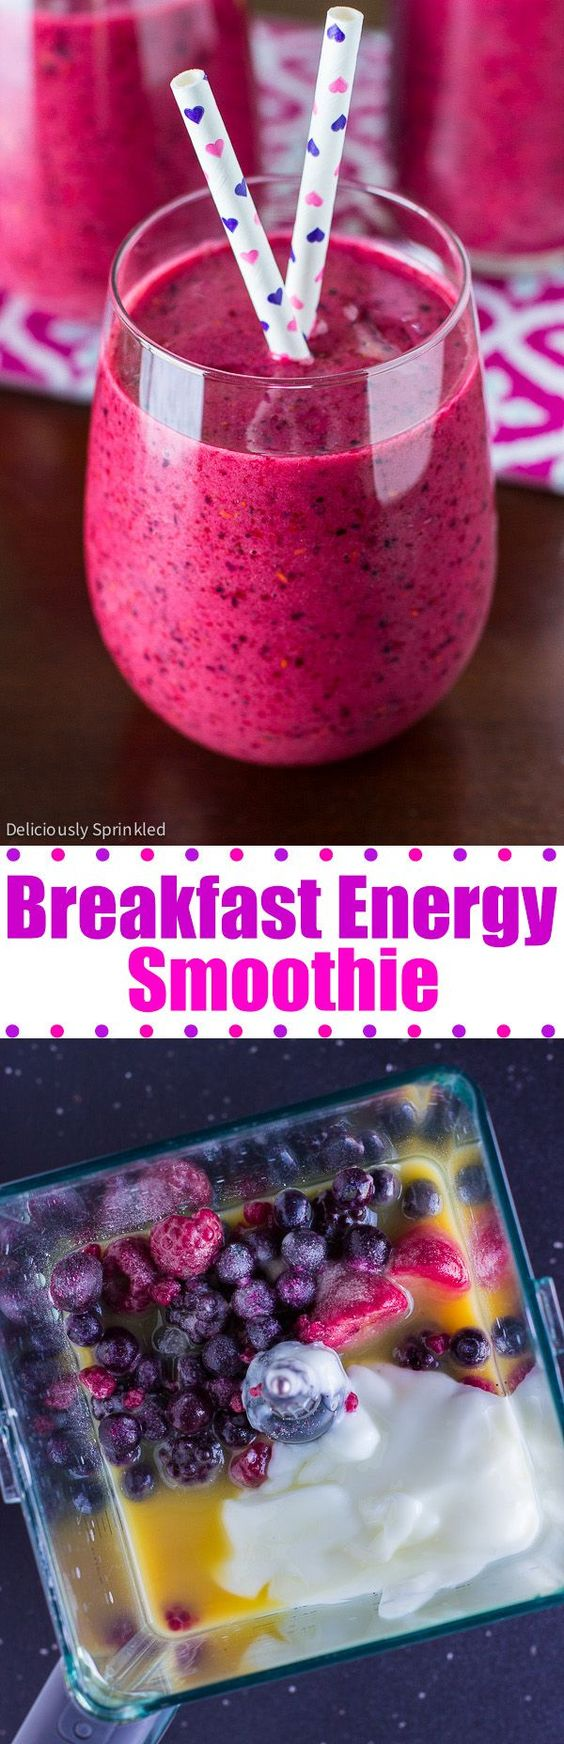 Breakfast Energy Smoothie Recipe via Deliciously Sprinkled - start your day off with the delicious smoothie that will give you a burst of energy!